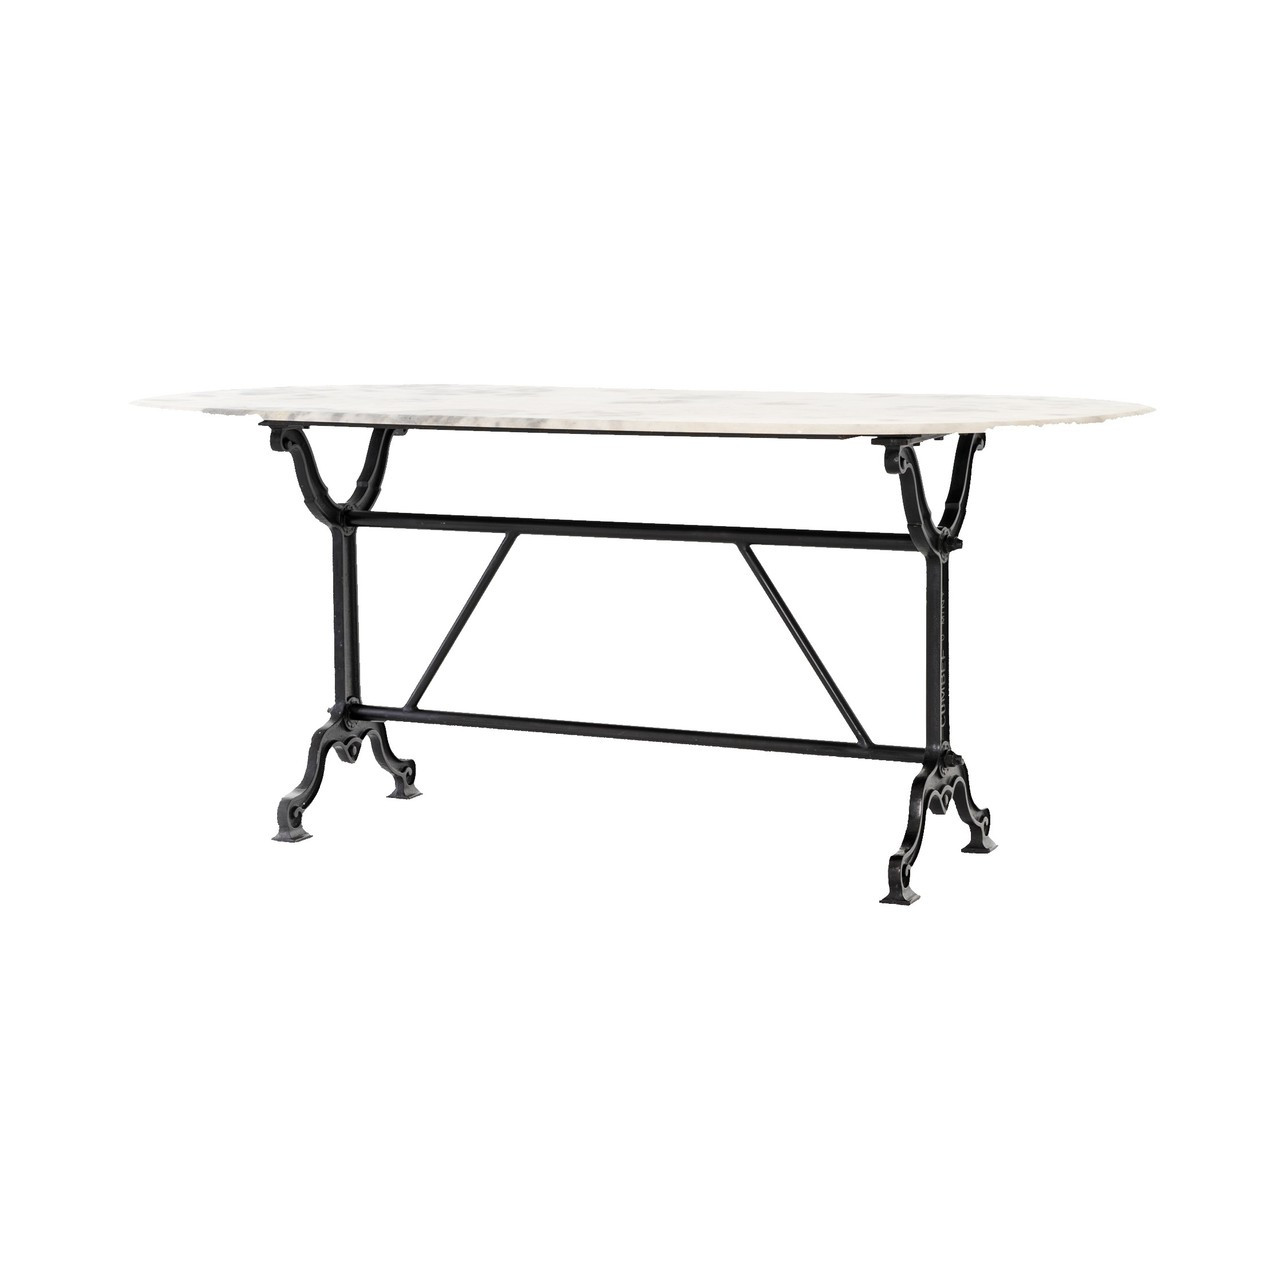 IRCK 193A,AVA DINING TABLE WHITE MARBLE/BLACK